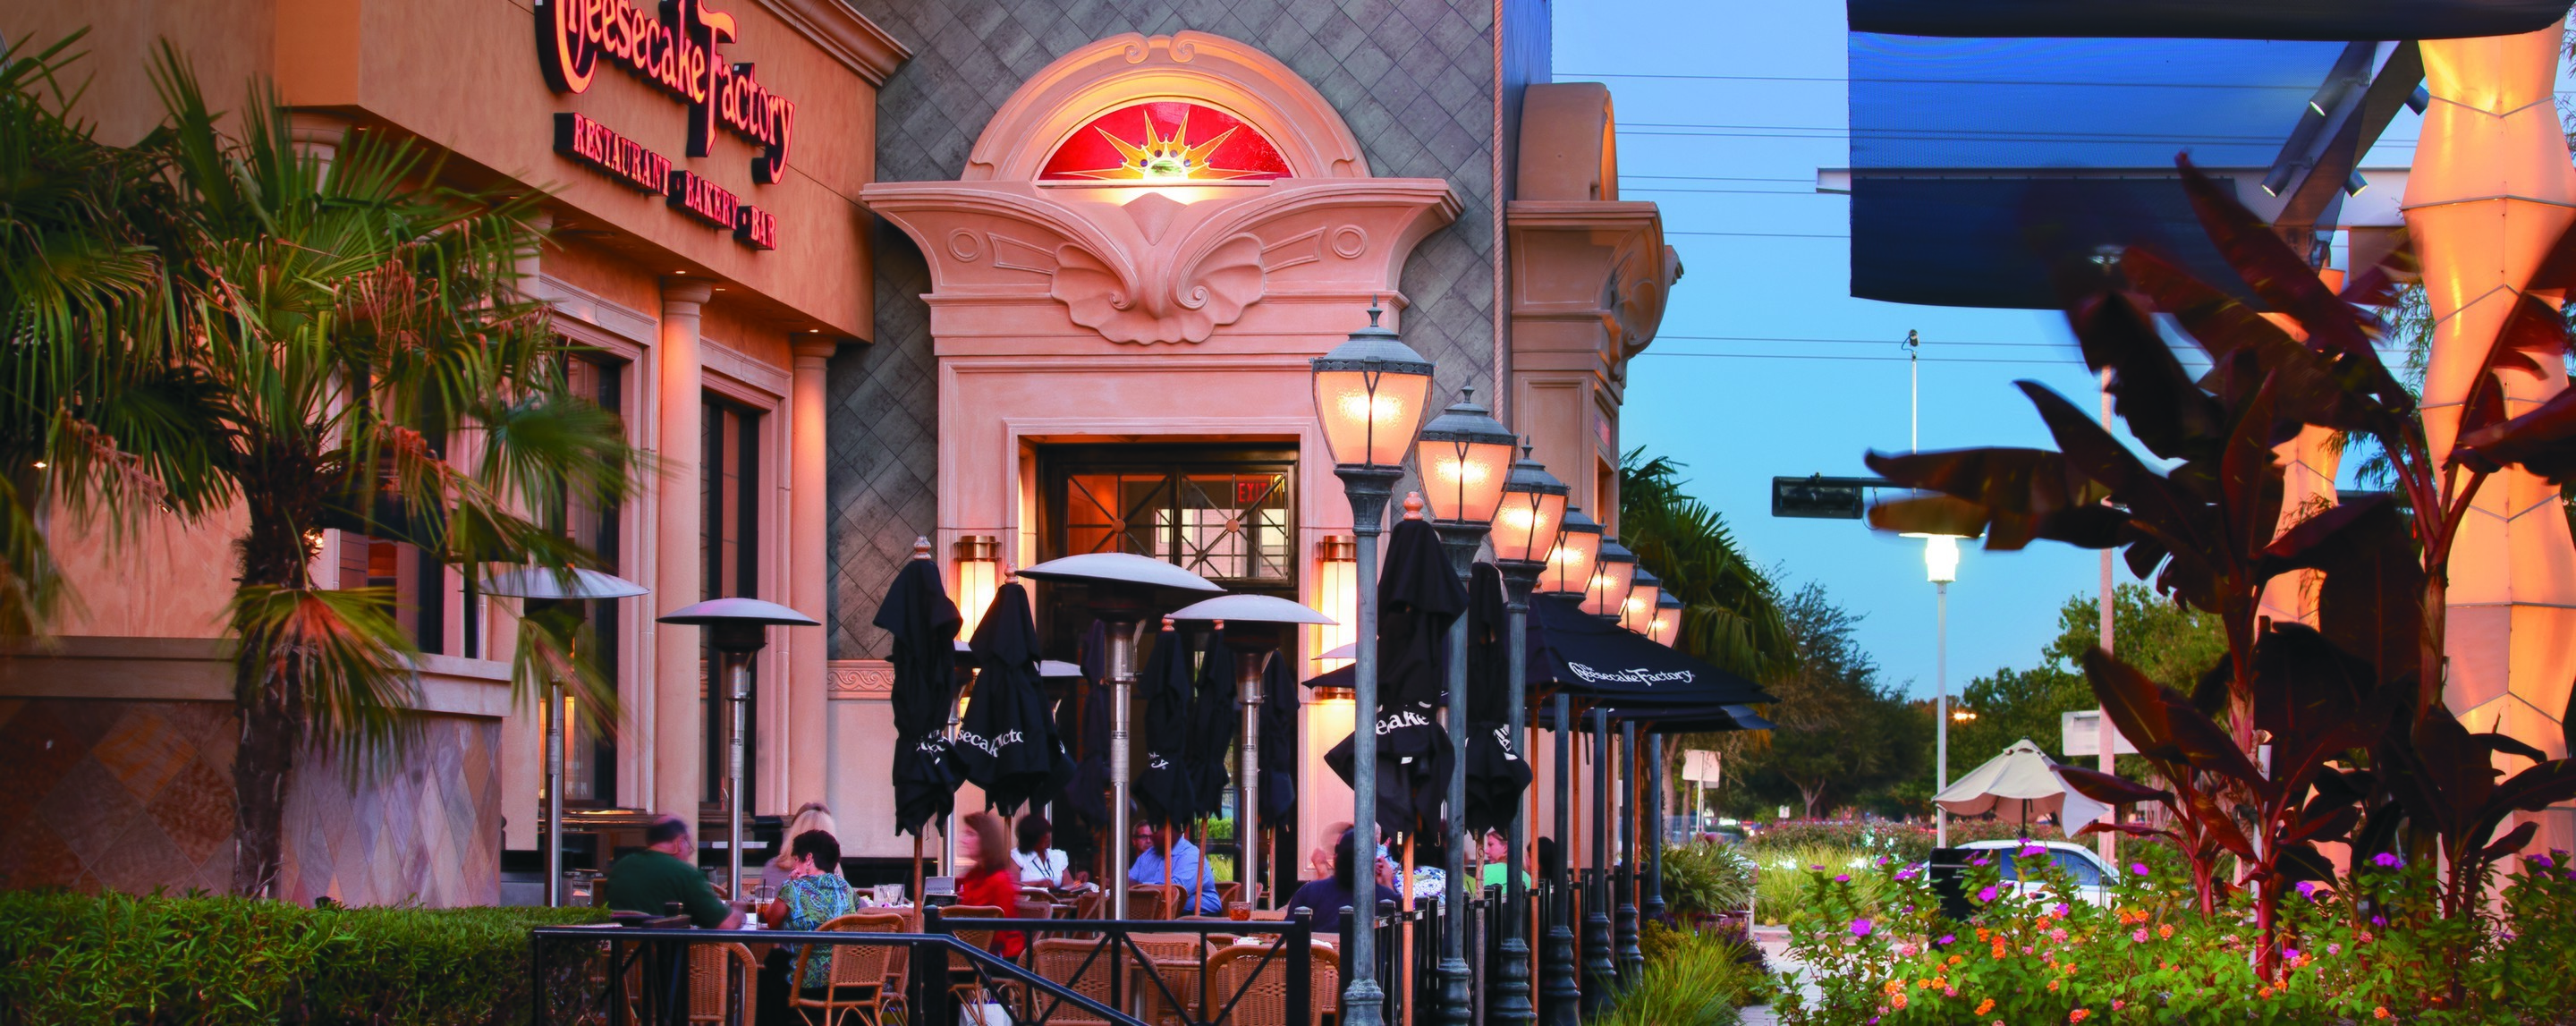 A crowded restaurant's patio seats customers outdoors near a fountain and another building.